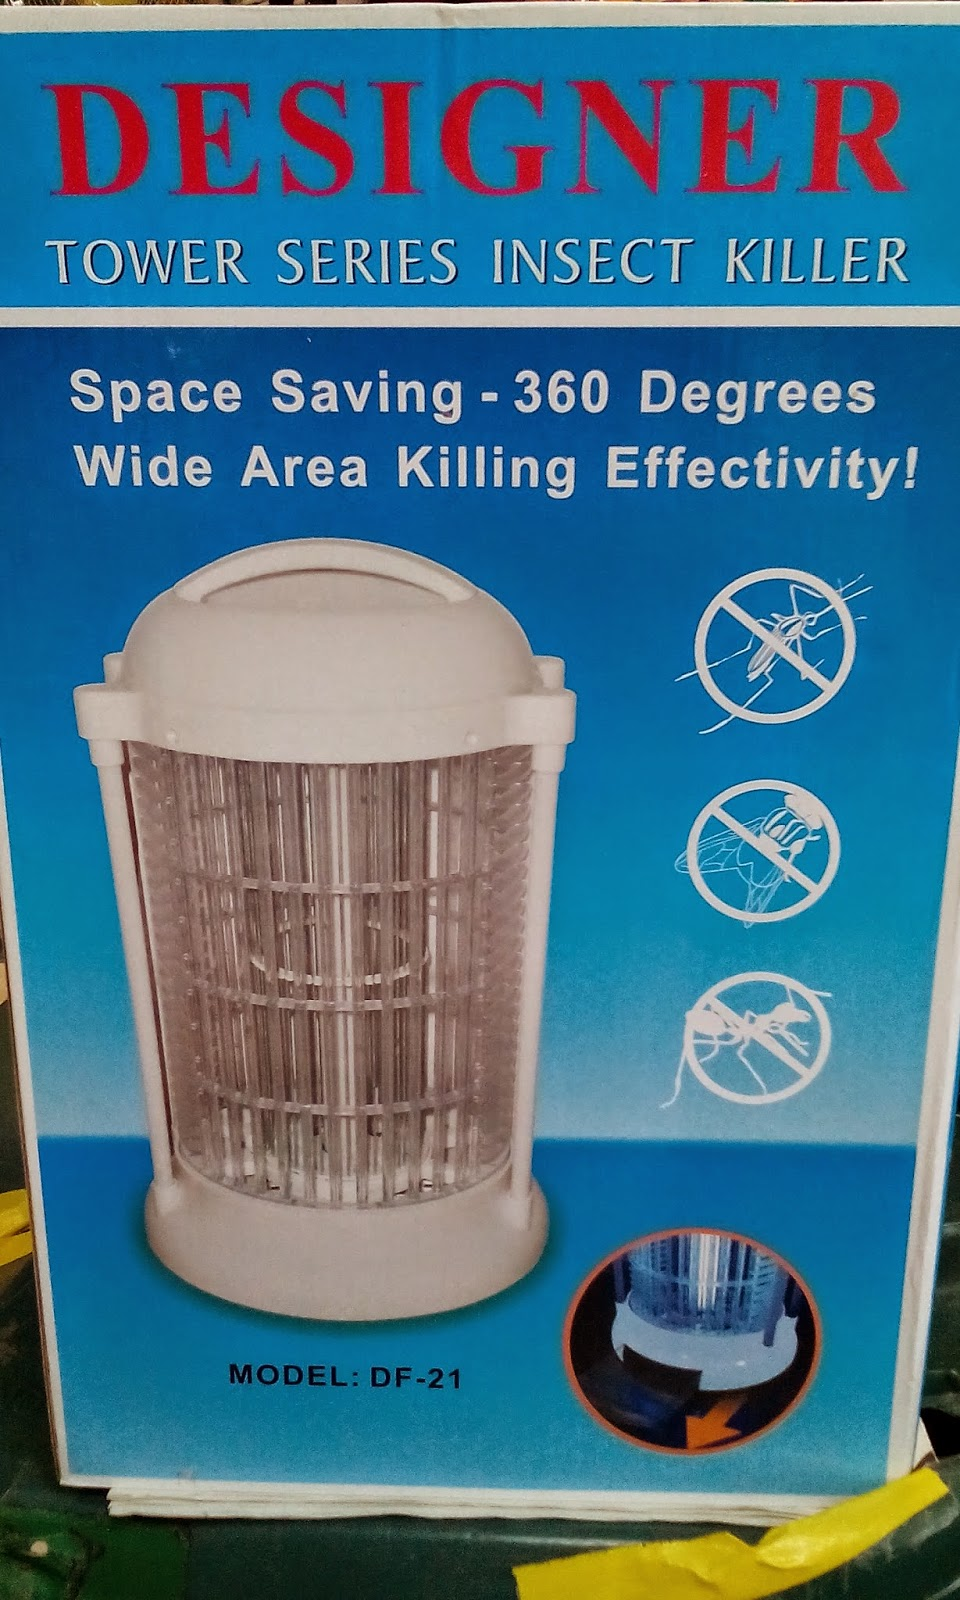 Wtsbed Bug Insect Killer Mosquito Pest Repeller Home Search Results For Quotmosquito Circuitquot Imghttp 4bpblogspotcom Rb6manwwjn0 U3seyar2dbi Aaaaaaaairq 6 Blhgkdpj8 S1600 Designer Tower Skl Diy Uptown 7